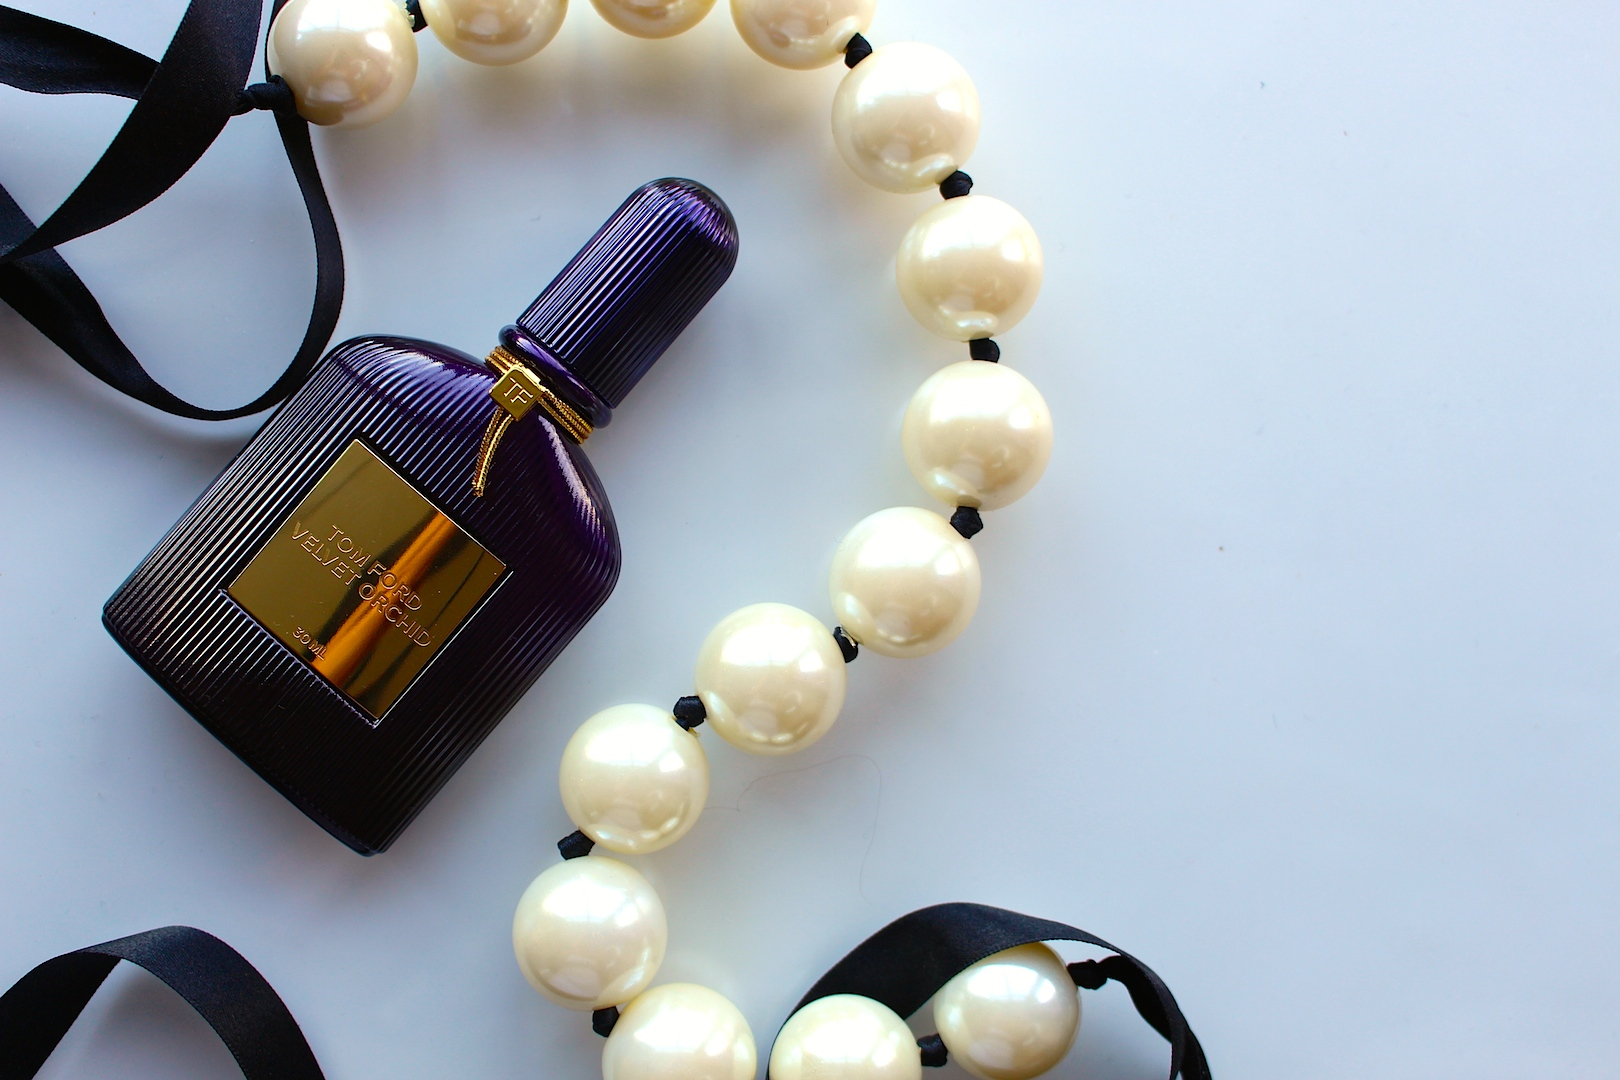 TOM FORD VELVET ORCHID - Tom Ford Beauty